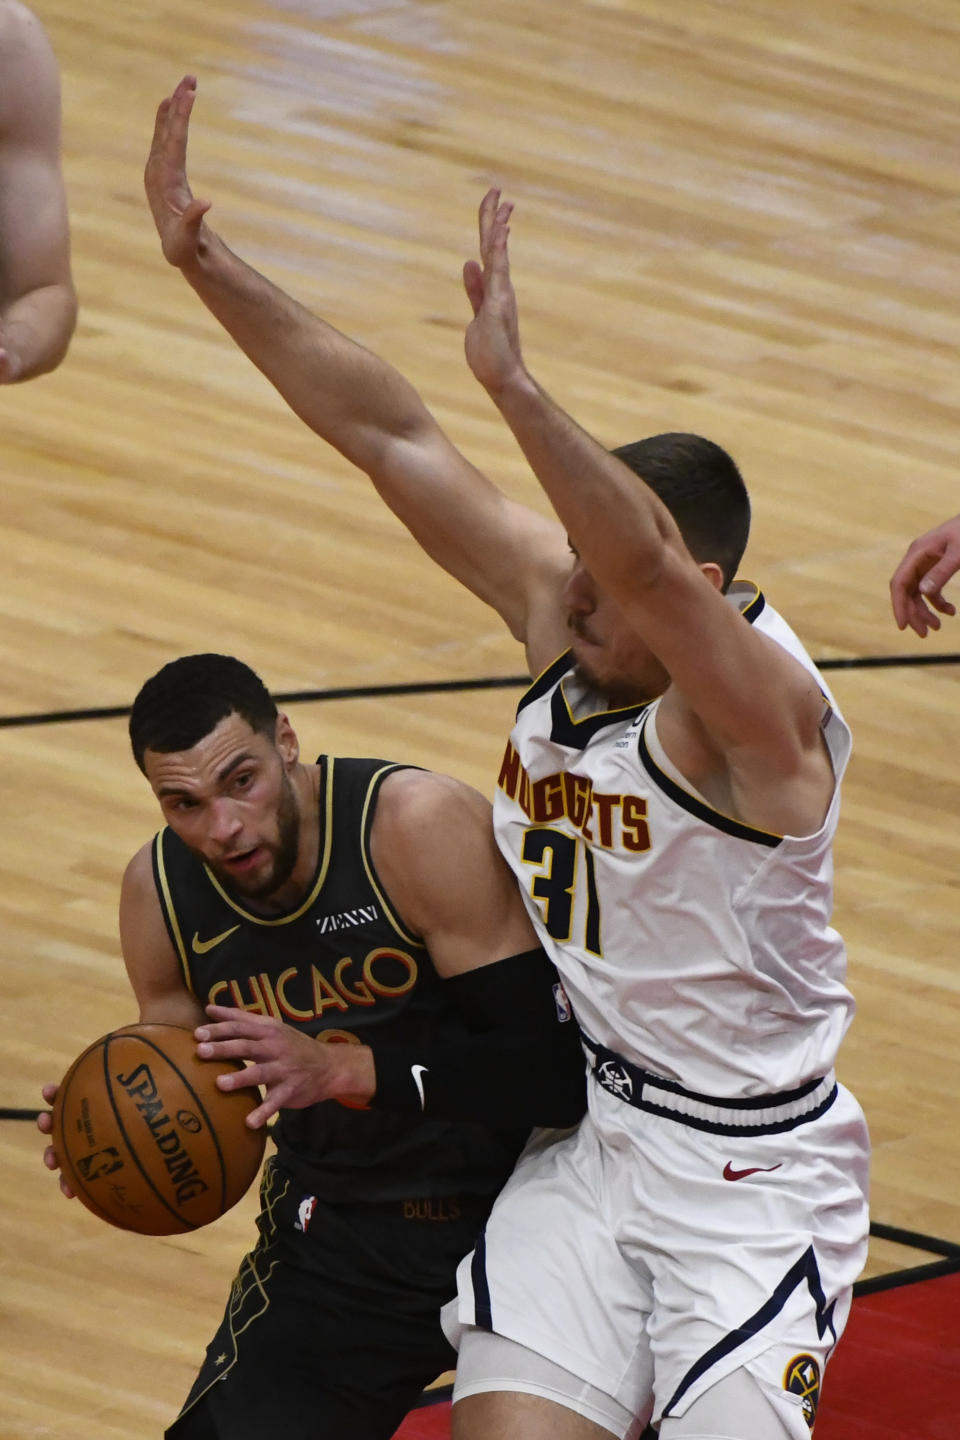 Chicago Bulls guard Zach LaVine, left, drives to the basket against Denver Nuggets forward Vlatko Cancar (31) during the first half of an NBA basketball game Monday, March 1, 2021, in Chicago. (AP Photo/Matt Marton)